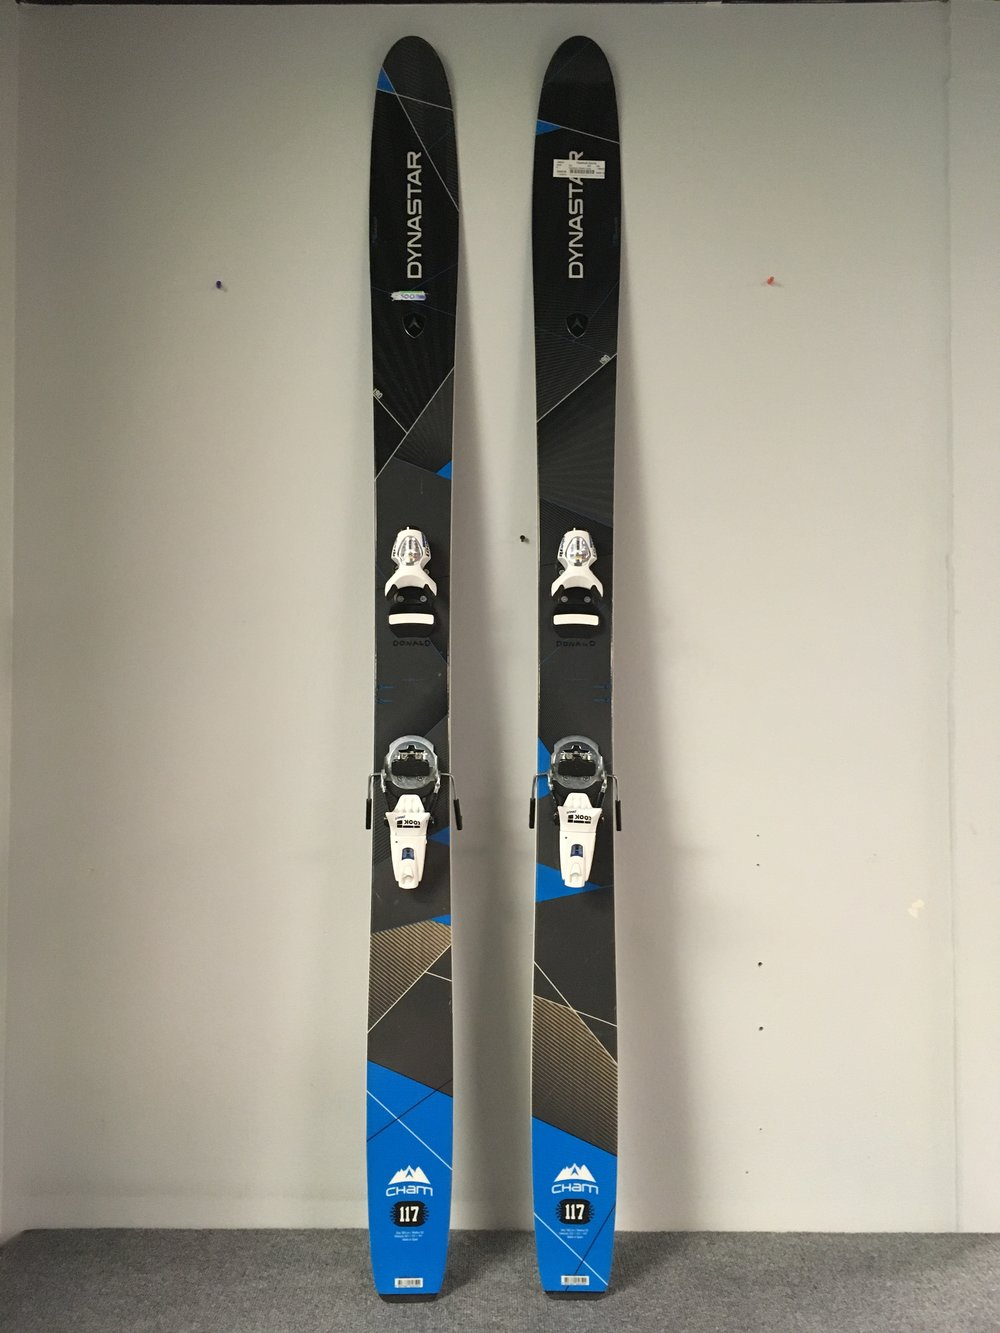 Get yourself some big sticks! The 2015 190 Dynastar Cham 117  with Look Pivot 18's definitely won't disappoint any big mountain skier. The complete setup brand new would cost well over $1,000 but we can get you out there for $449!